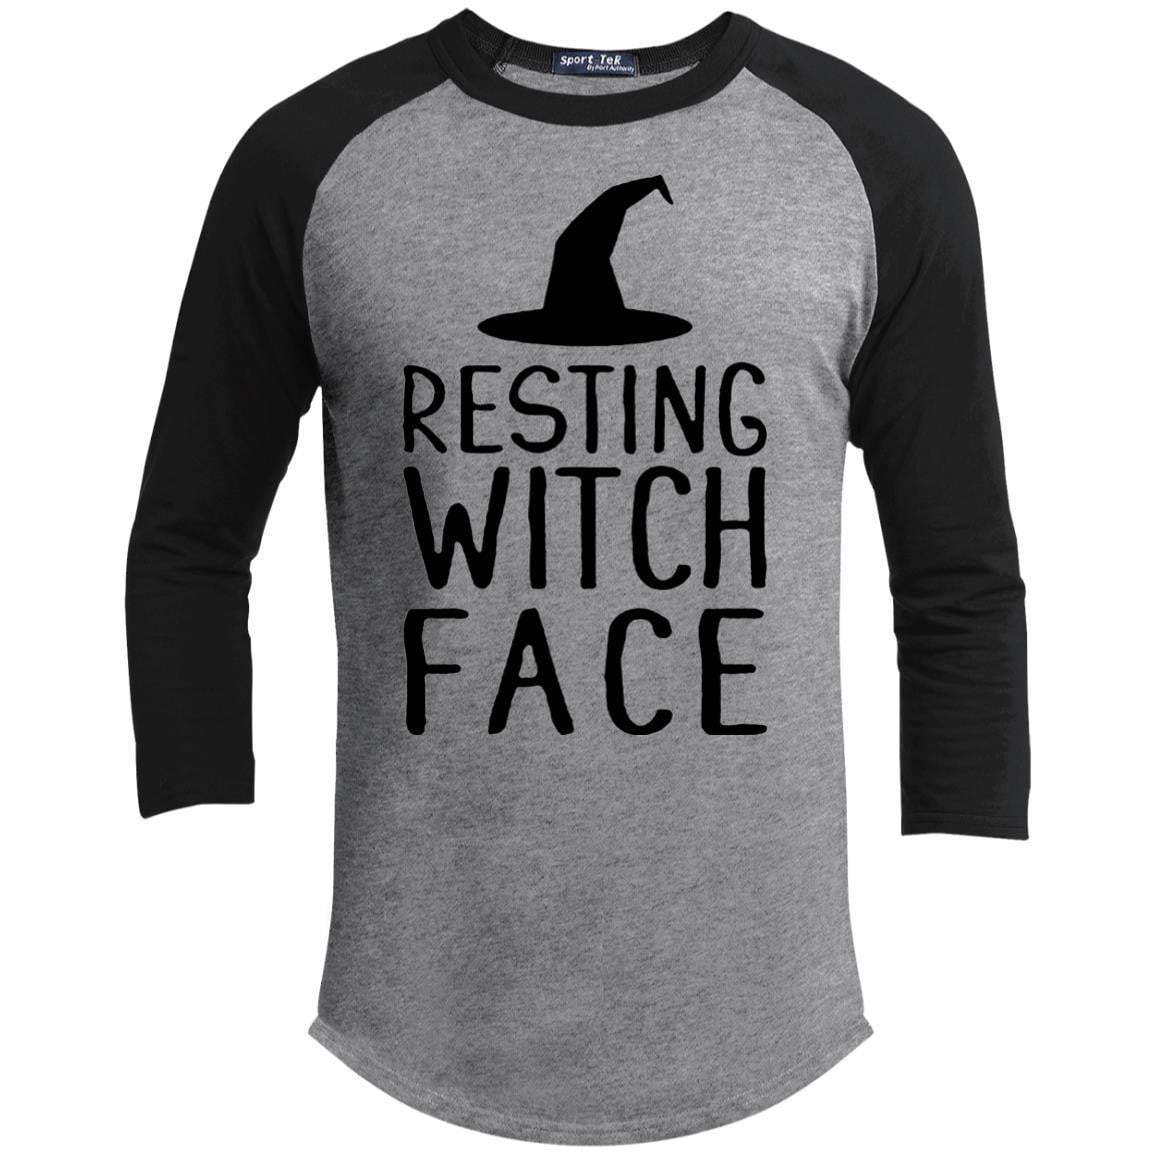 RESTING WITCH FACE Unisex 3/4 Sleeve Raglan